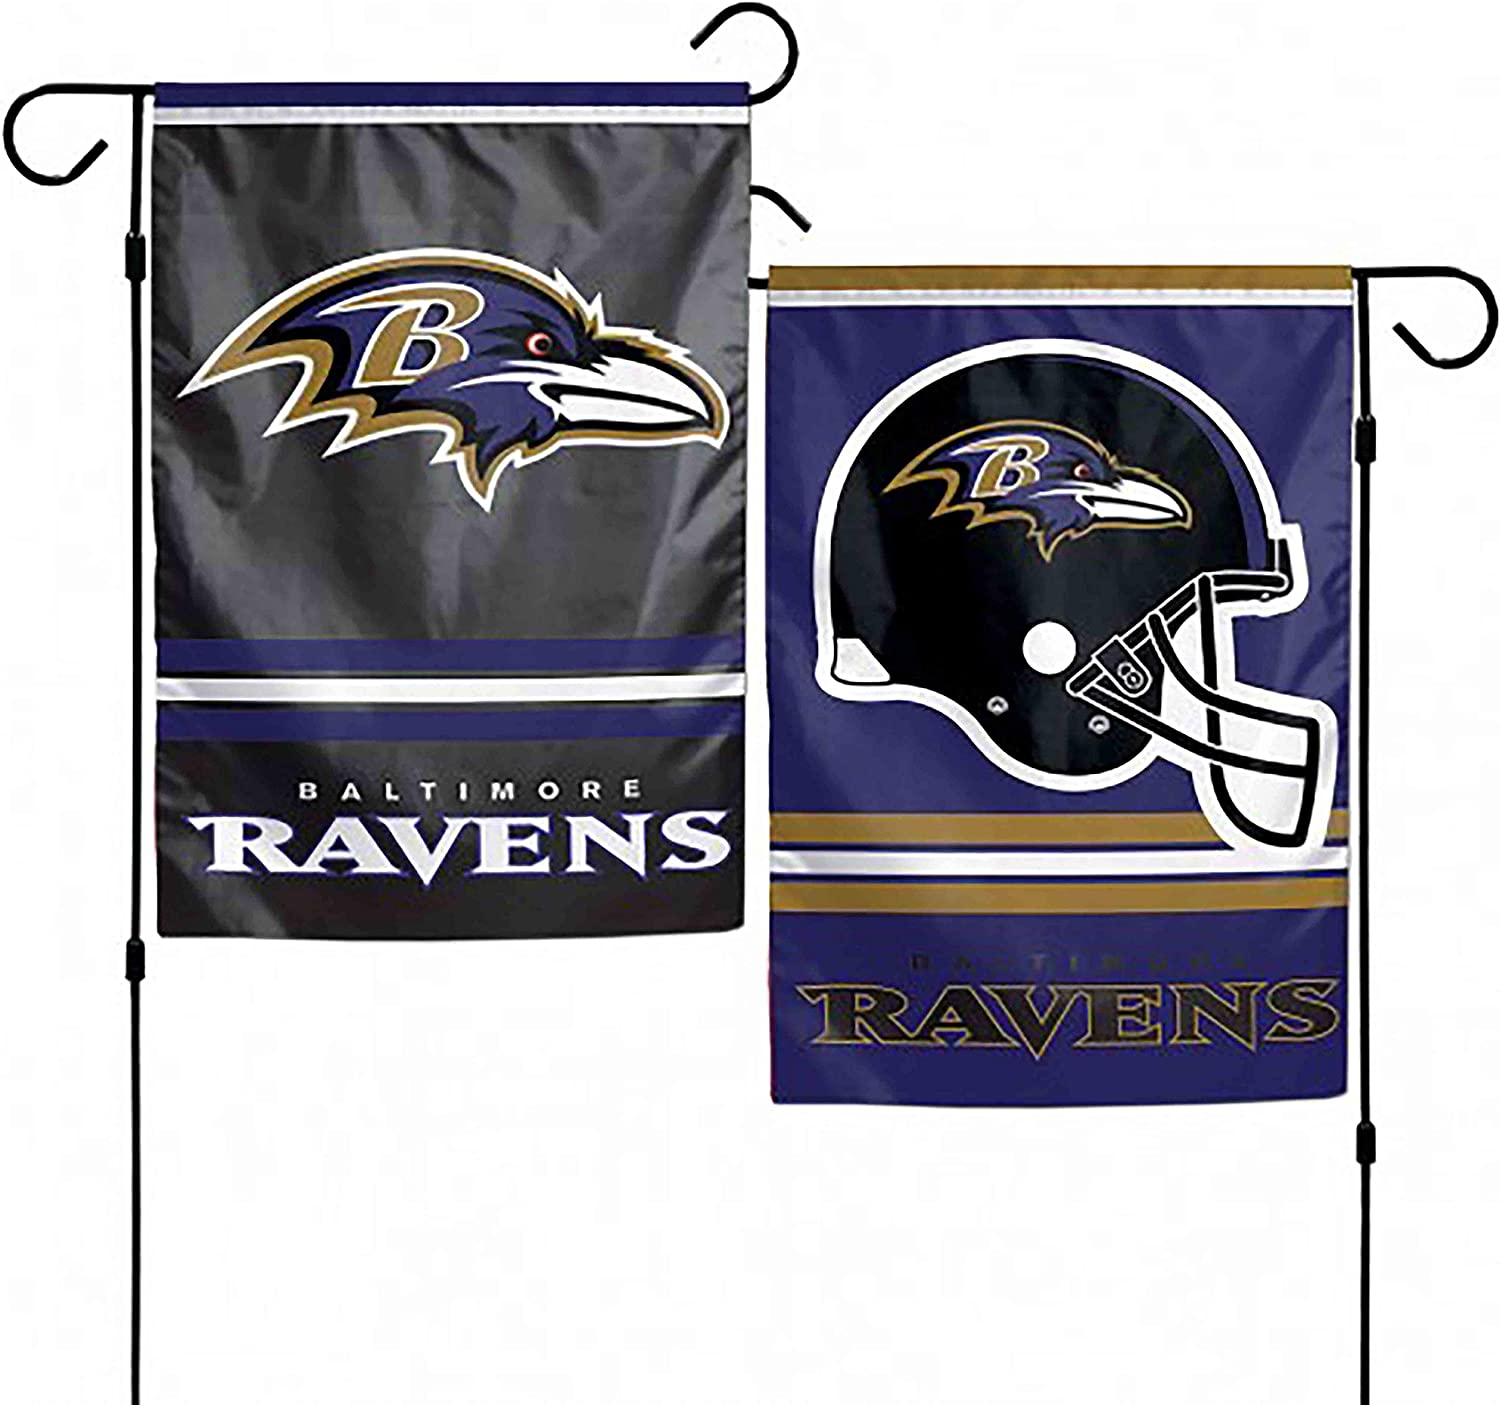 WinCraft NFL Baltimore Ravens 2-Sided Garden Flag, 12 x 18-inches